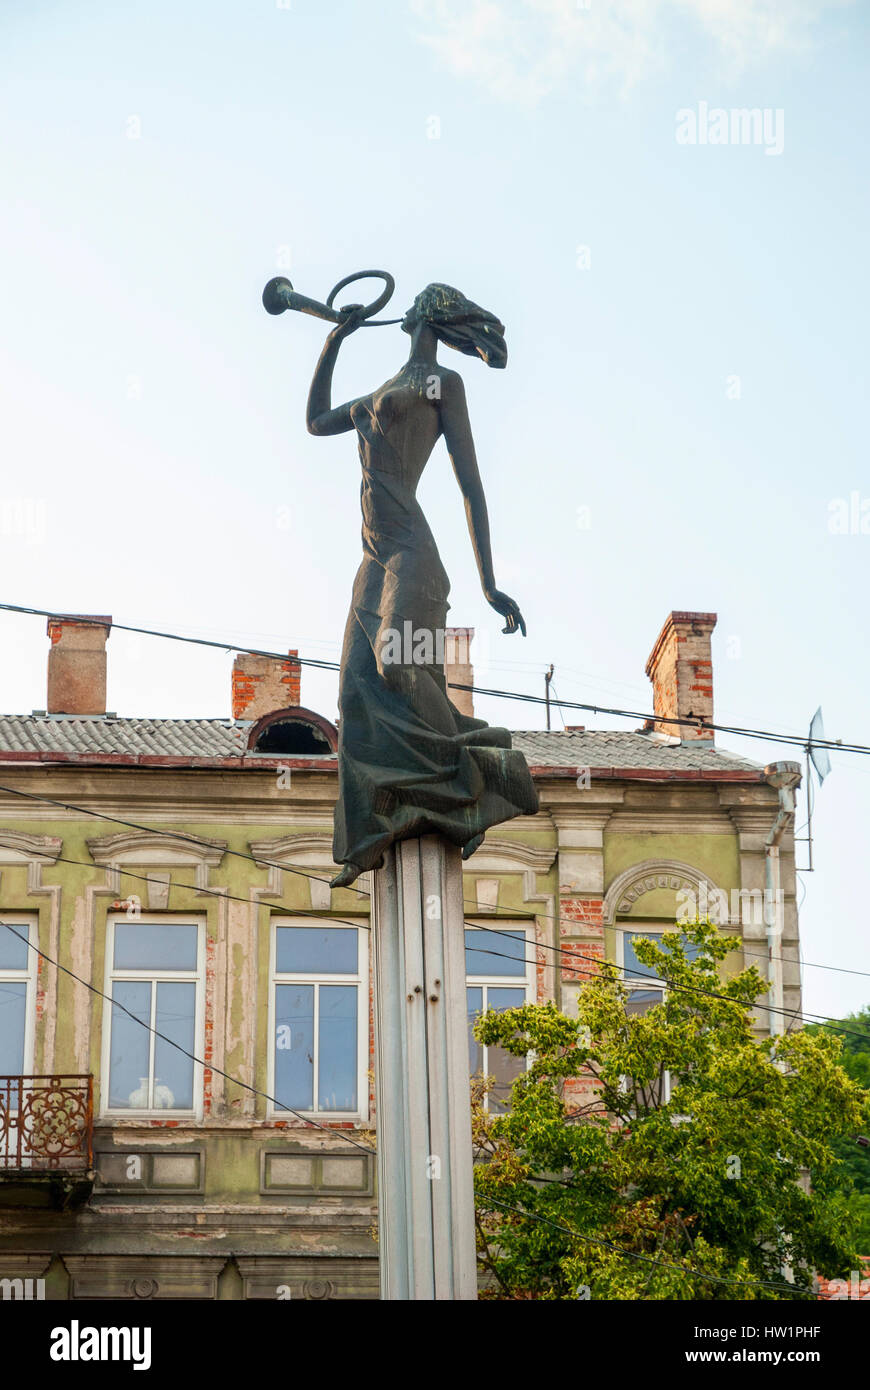 Close-up of stone statue of woman with horn on pillar in Kaunas, Lithuania - Stock Image